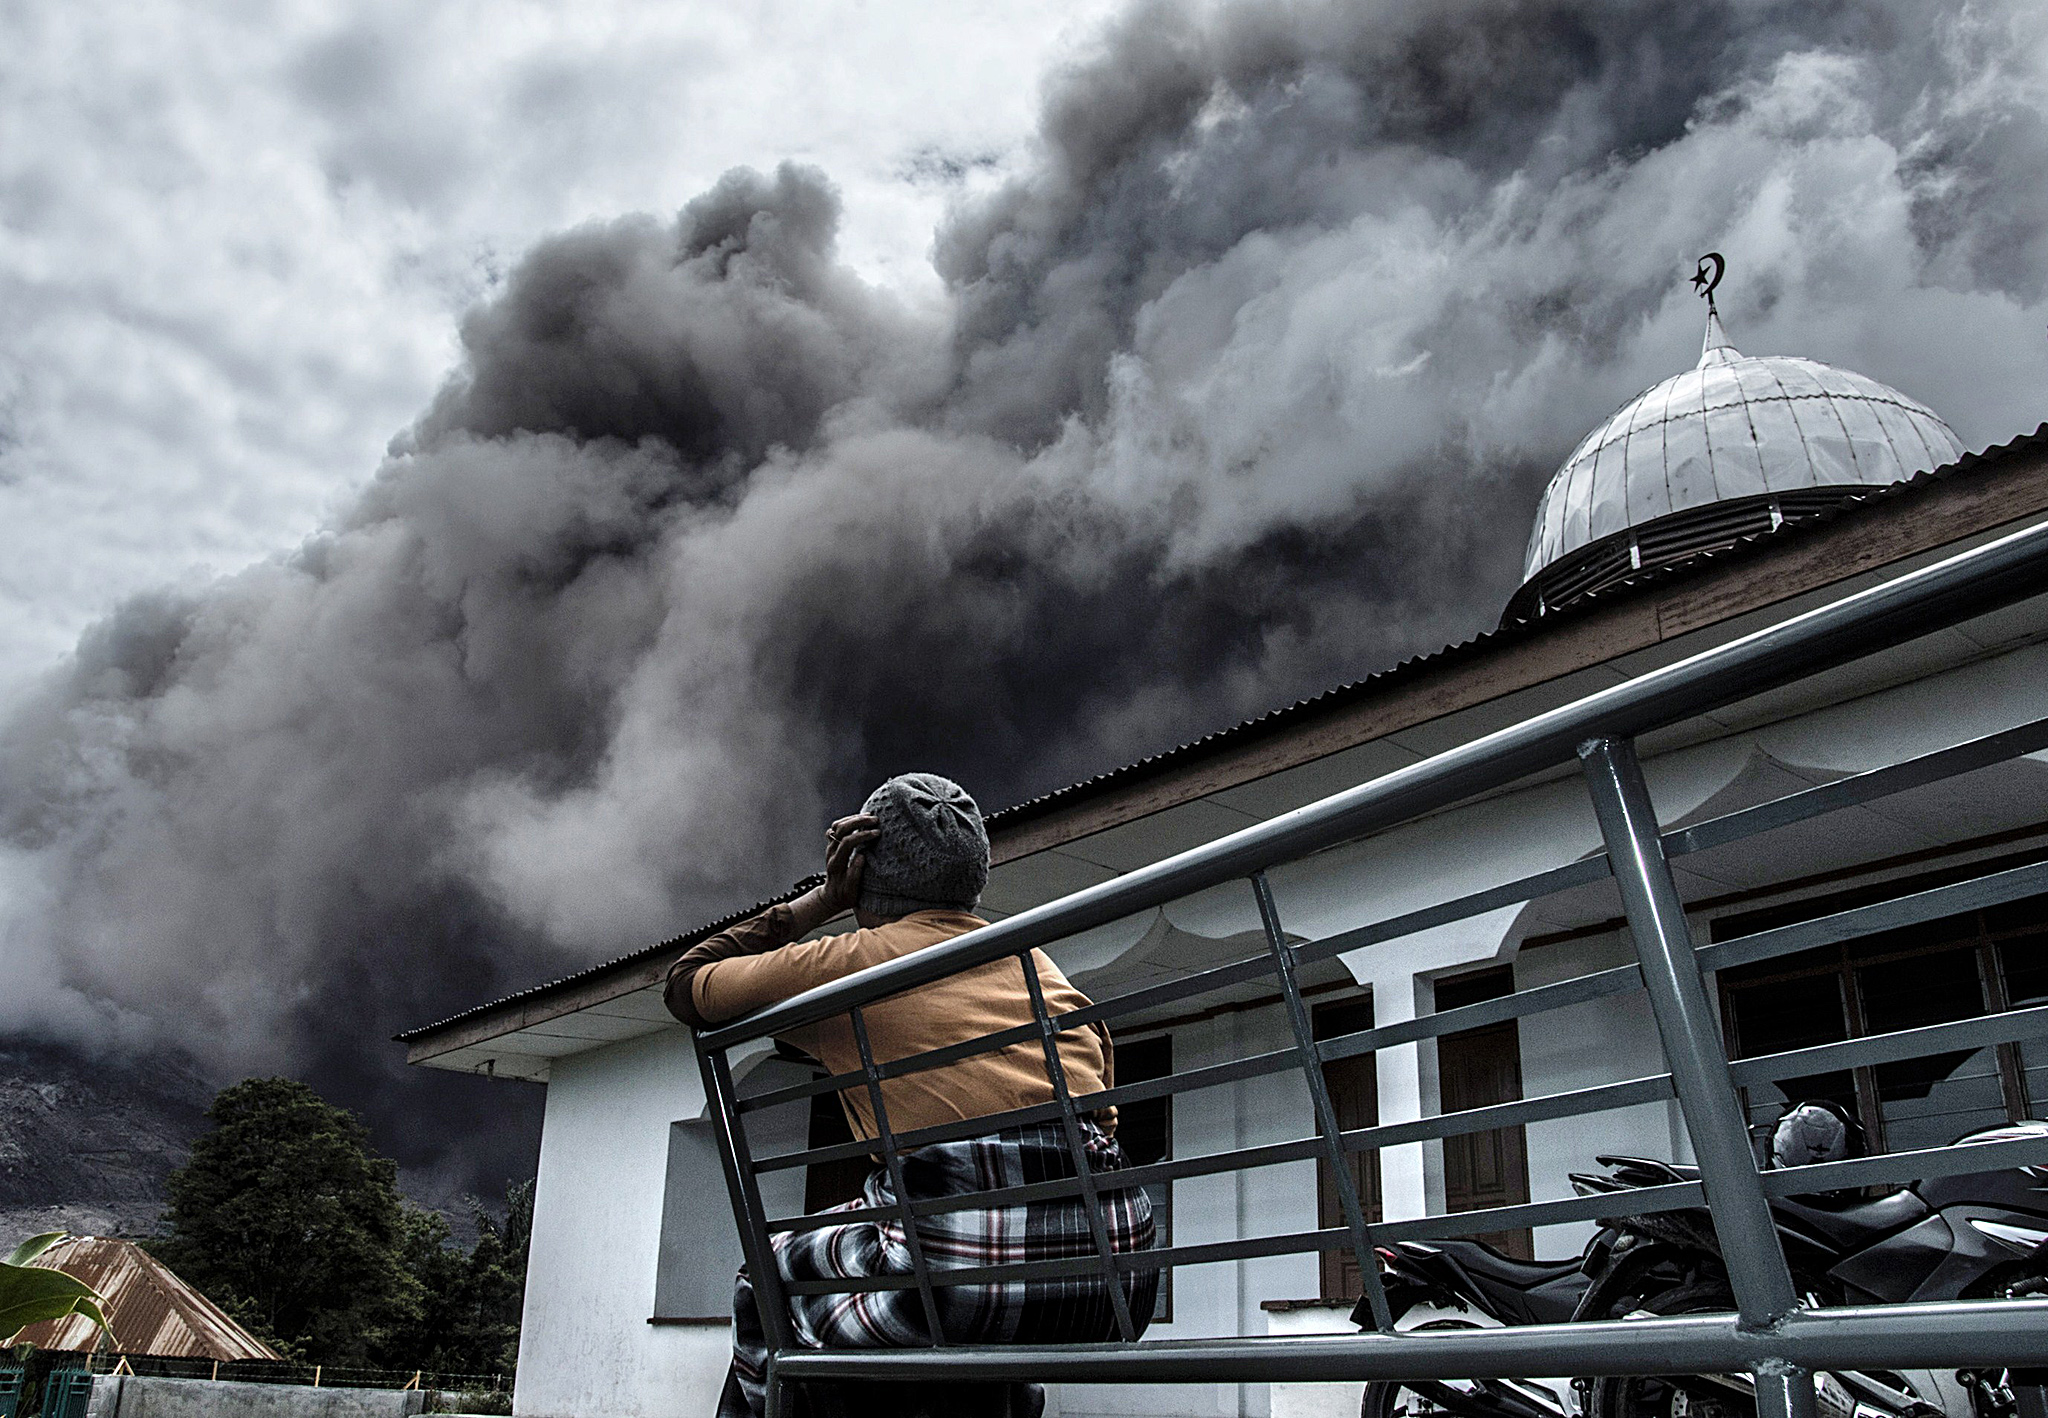 An Indonesian woman looks on as the Moun...An Indonesian woman looks on as the Mount Sinabung volcano spews ash as seen from the nearest village in Karo district, North Sumatra province, on June 16, 2015. More than 1,200 Indonesian villagers were evacuated June 15 from their homes close to a rumbling volcano on Sumatra island, an official said. AFP PHOTO / Sutanta ADITYASUTANTA ADITYA/AFP/Getty Images